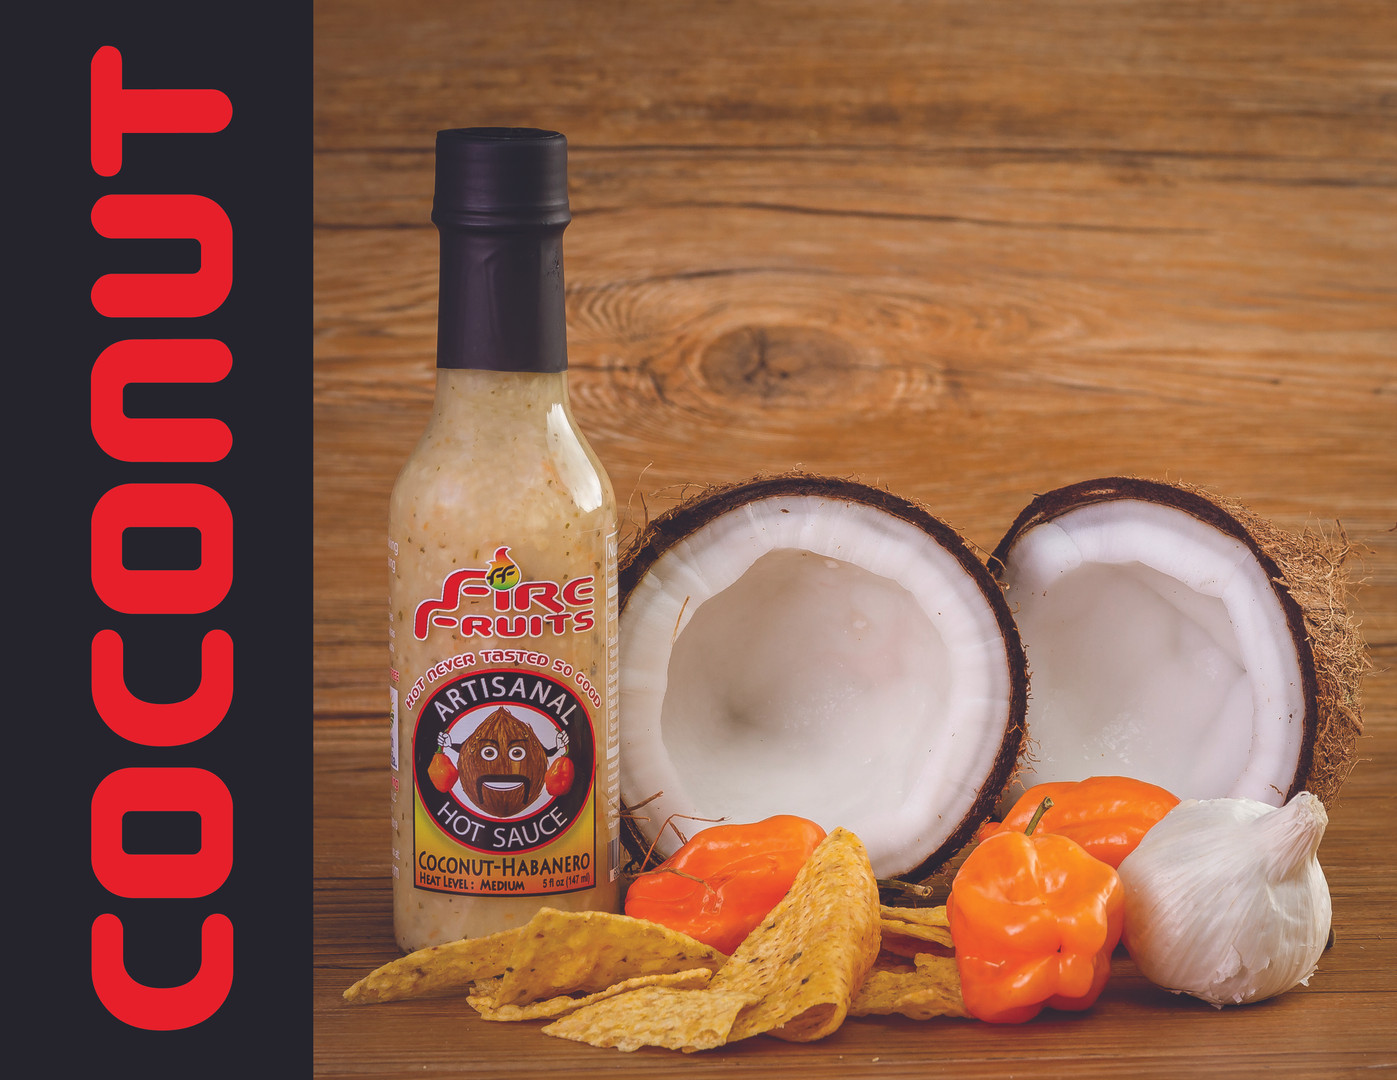 Originated in the Indonesia region, the coconut is consumed in the liquid as well as the solid form. The pulp of the fruit is crunchy, sweet and juicy. Thanks to its soft, sweet and exotic flavor, it is ideal for desserts. We believe is ideal to be mixed with habaneros to make one of the most unique and delicious hot sauce in the market. After you try our Coconut - Habanero Artisanal Hot Sauce you will feel your mouth dancing the Macarena!!!